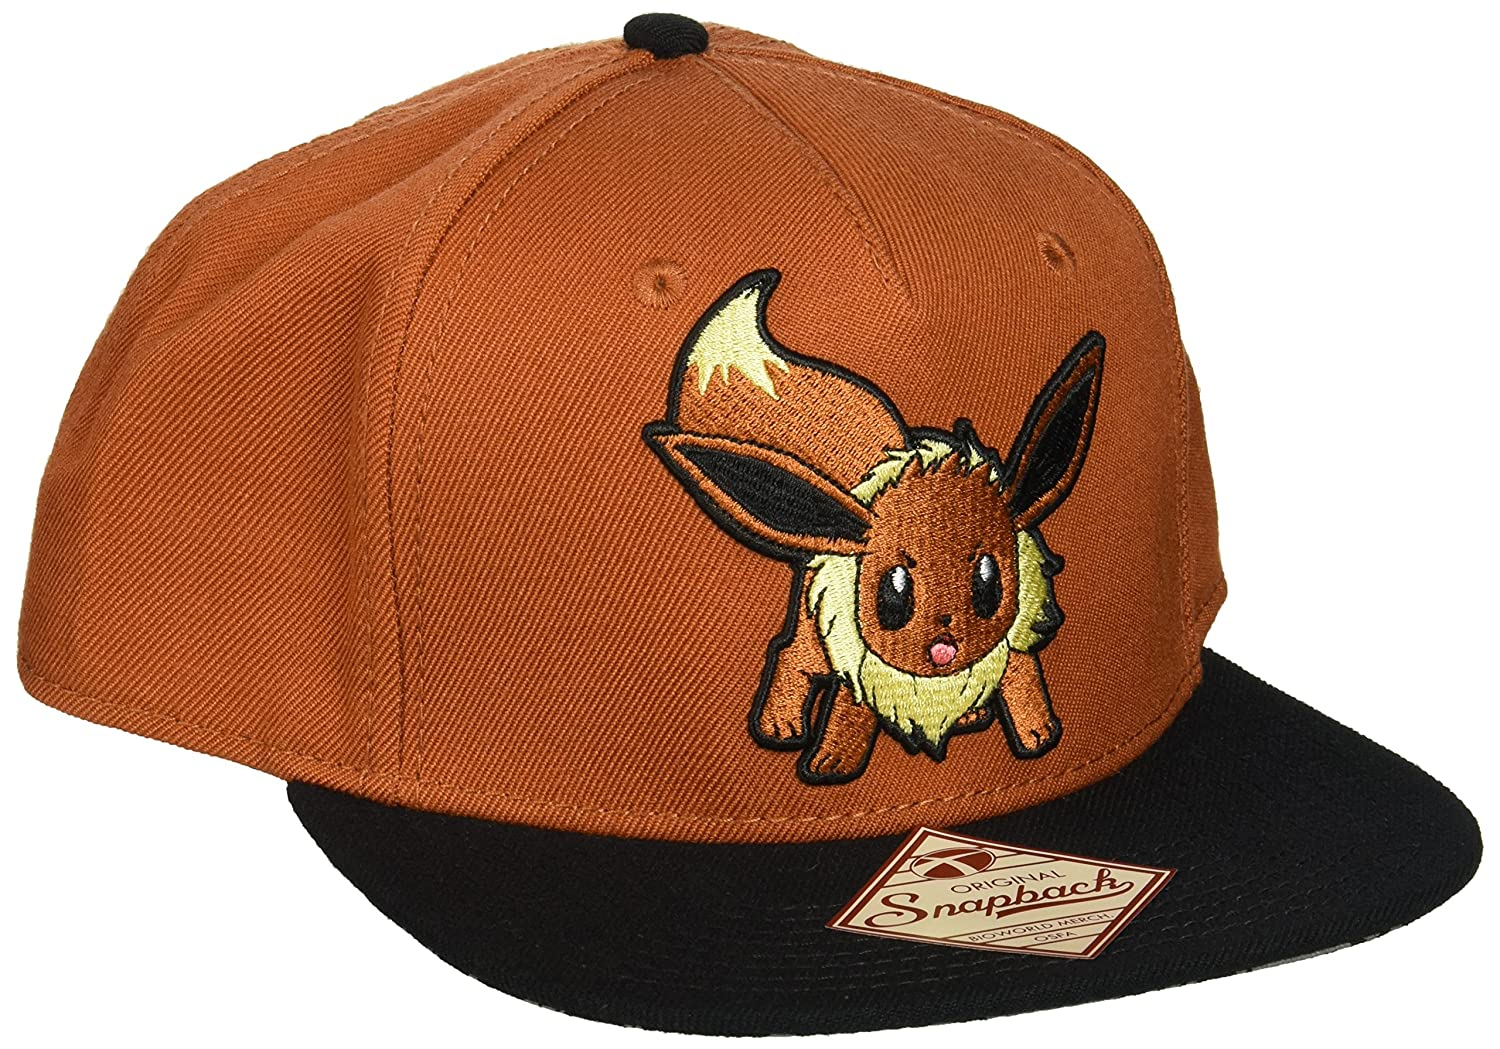 BIOWORLD 887439997497 Pokemon Eevee Brown Color Block Snapback Baseball Cap Hat JVG INC. - CA